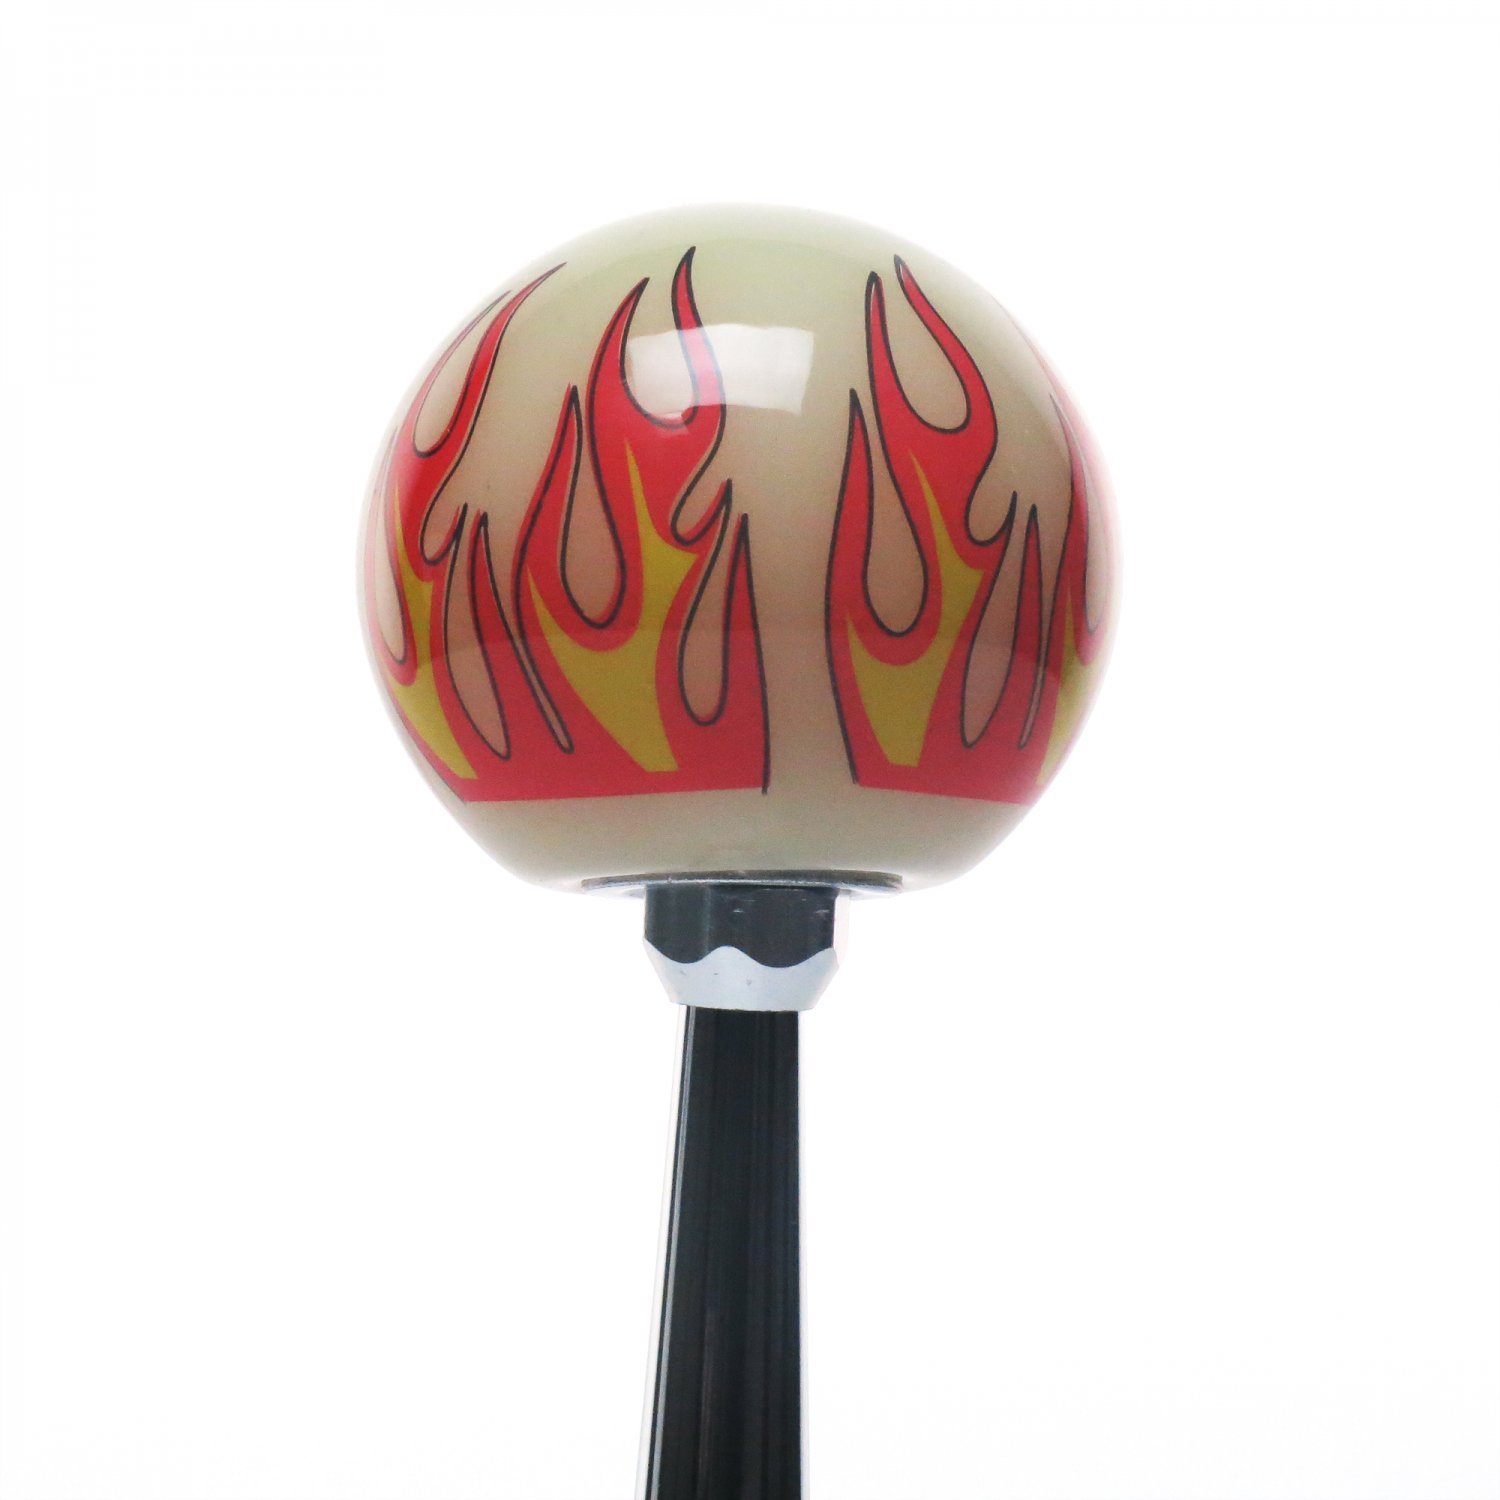 American Shifter 293546 Shift Knob Pink 6 Speed Shift Pattern - Dots 26 Ivory Flame with M16 x 1.5 Insert